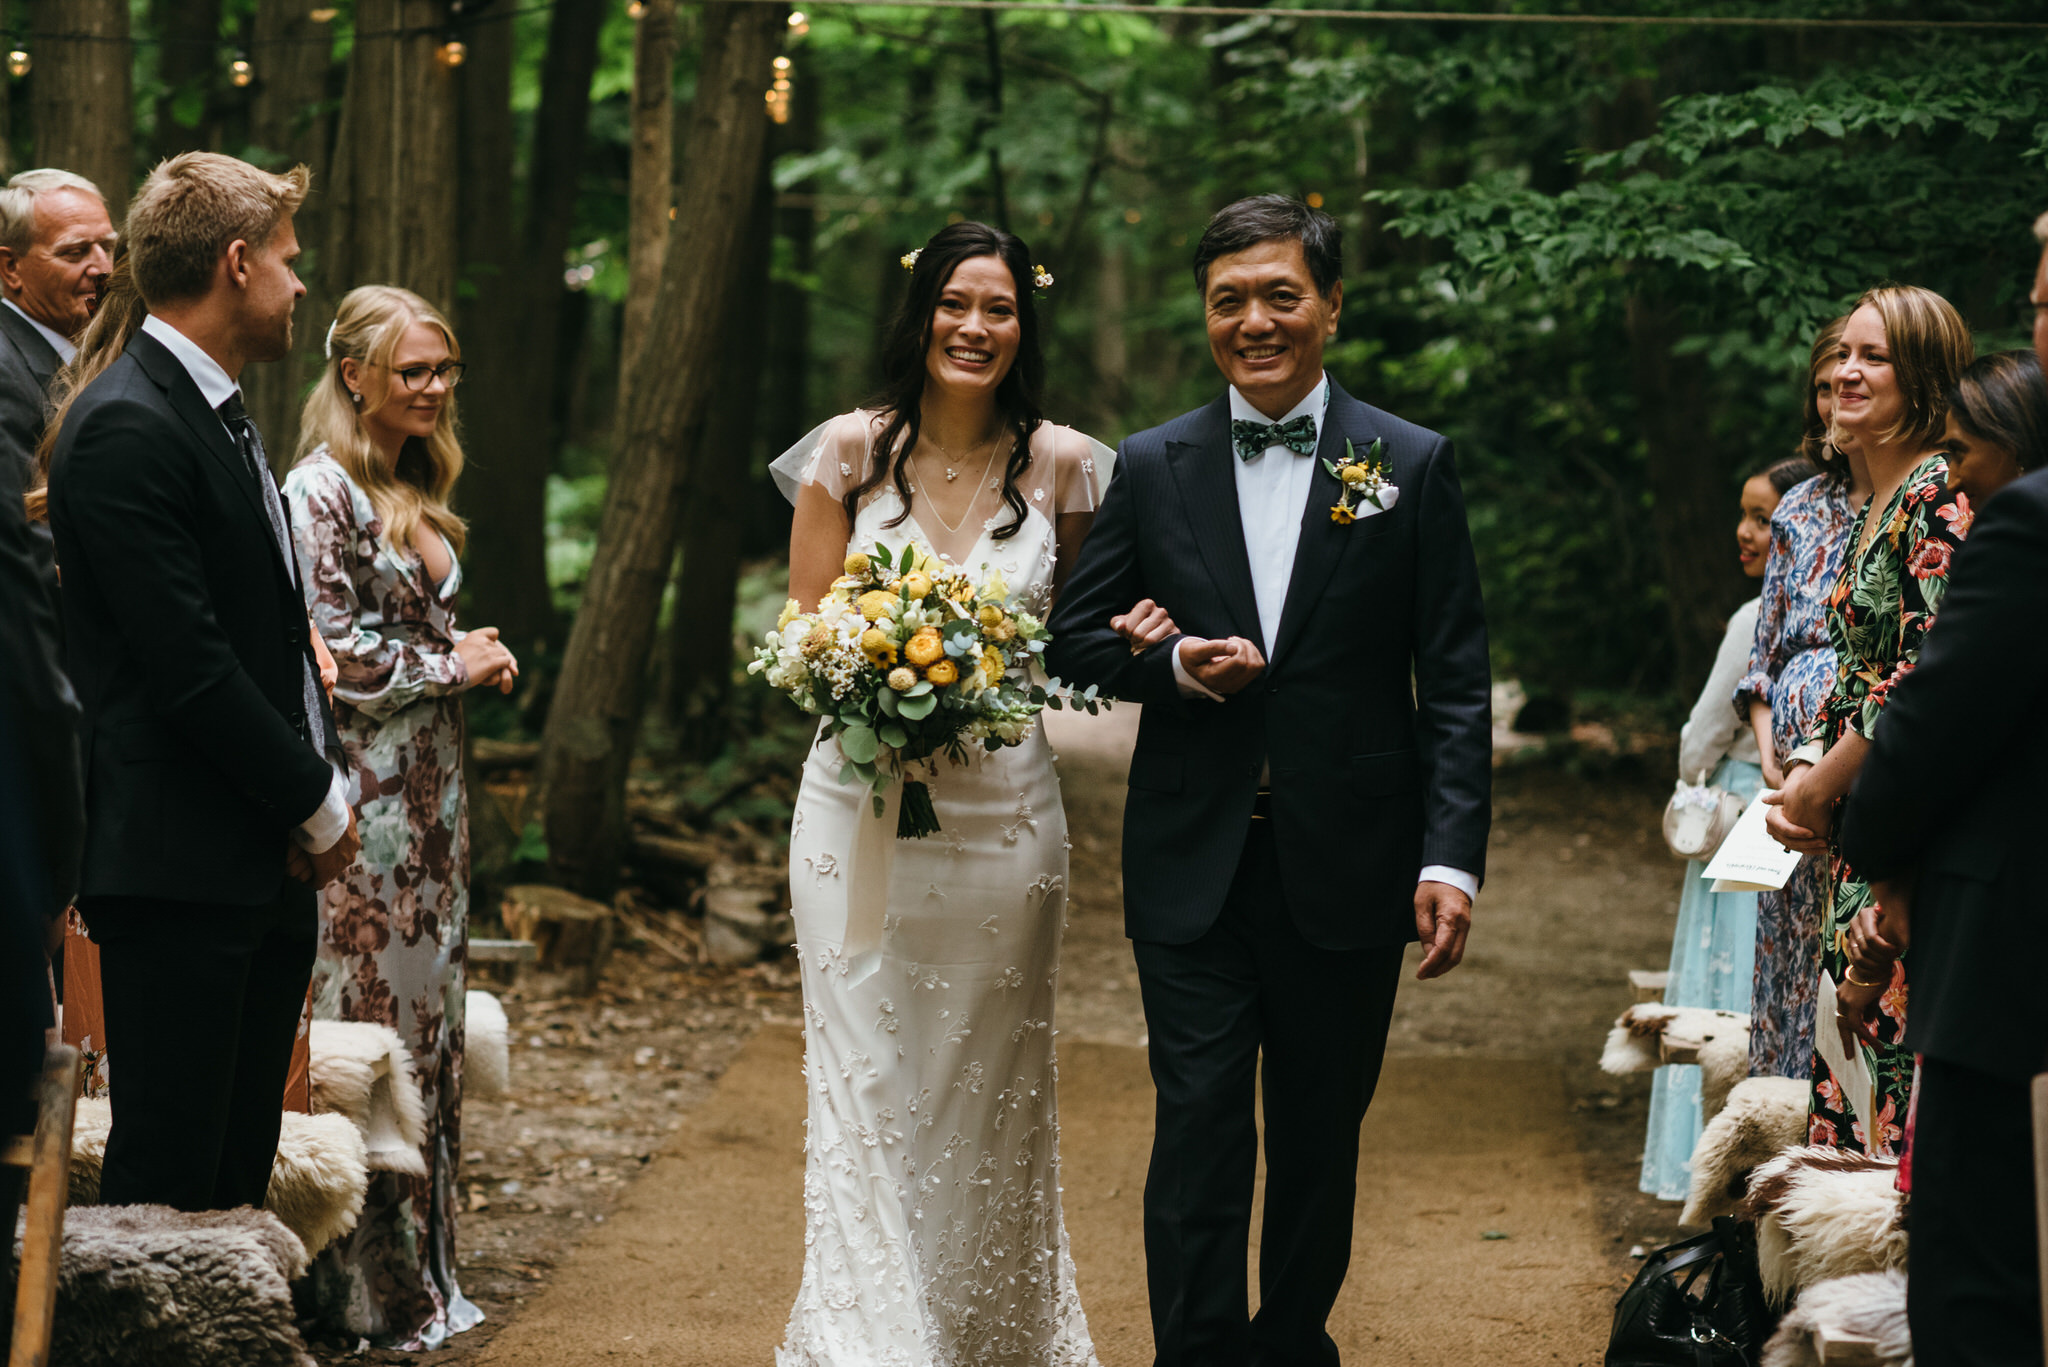 The dreys kent wedding ceremony in the woods